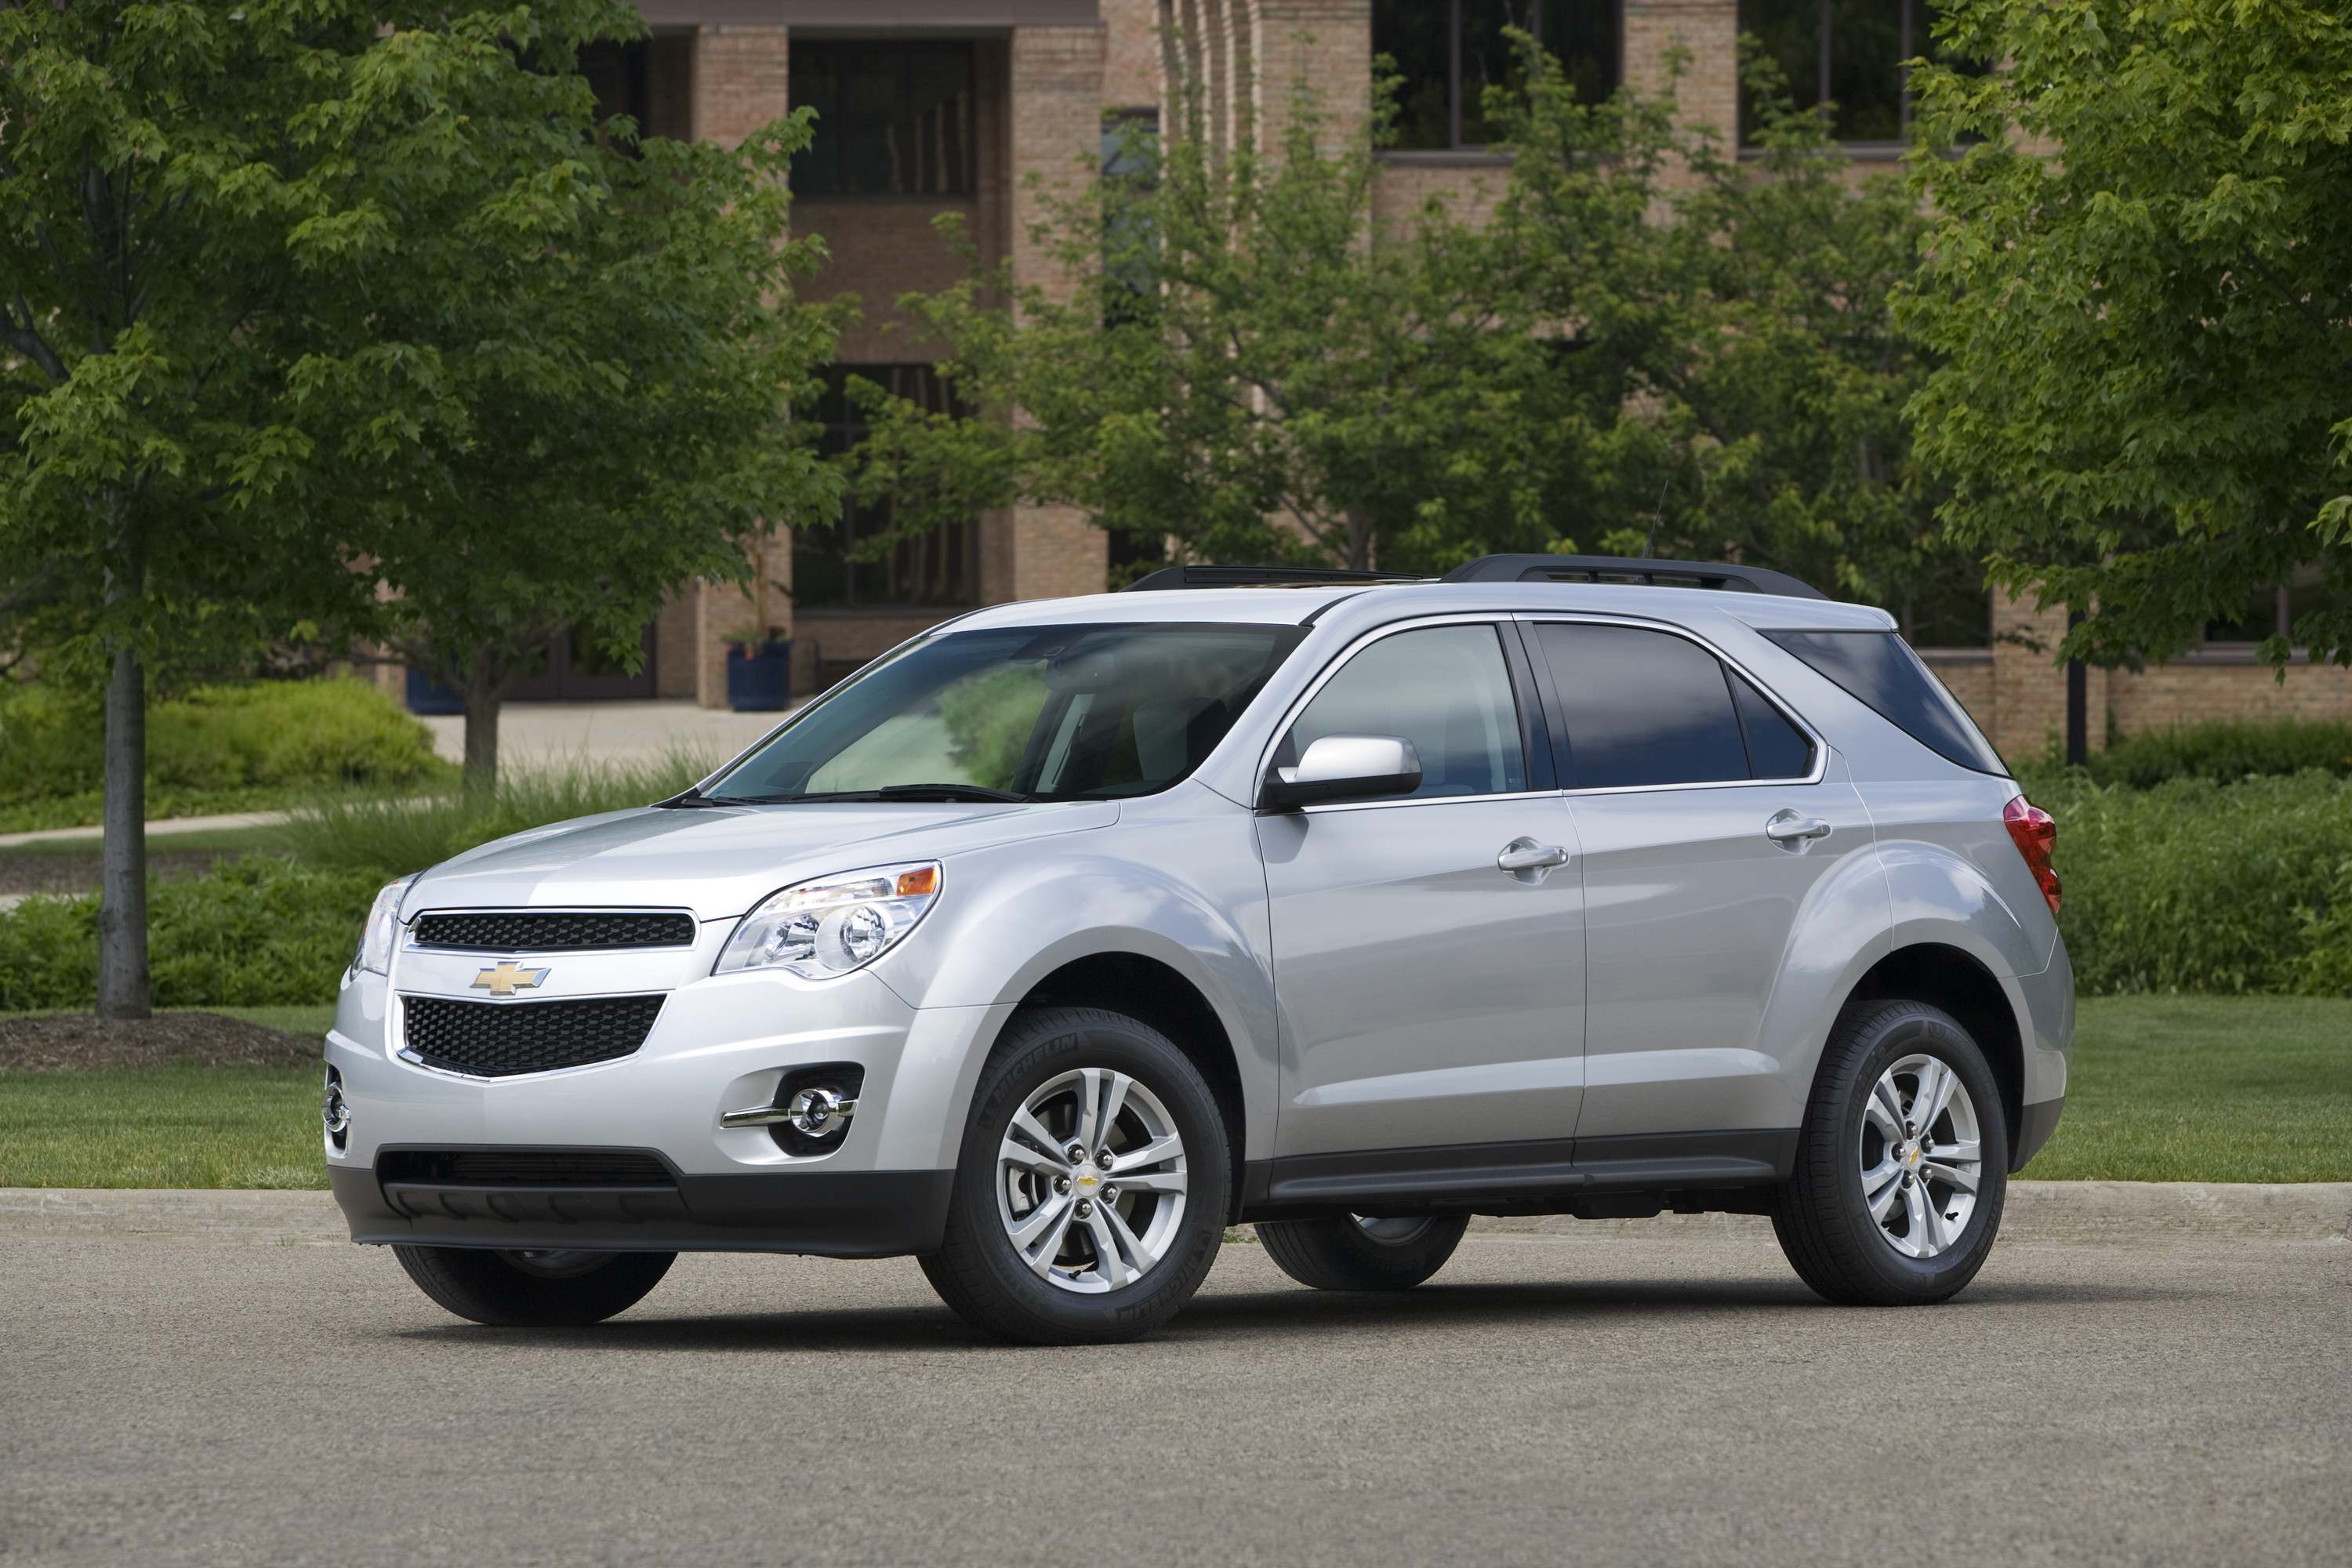 chevrolet equinox a better buy the car family. Black Bedroom Furniture Sets. Home Design Ideas